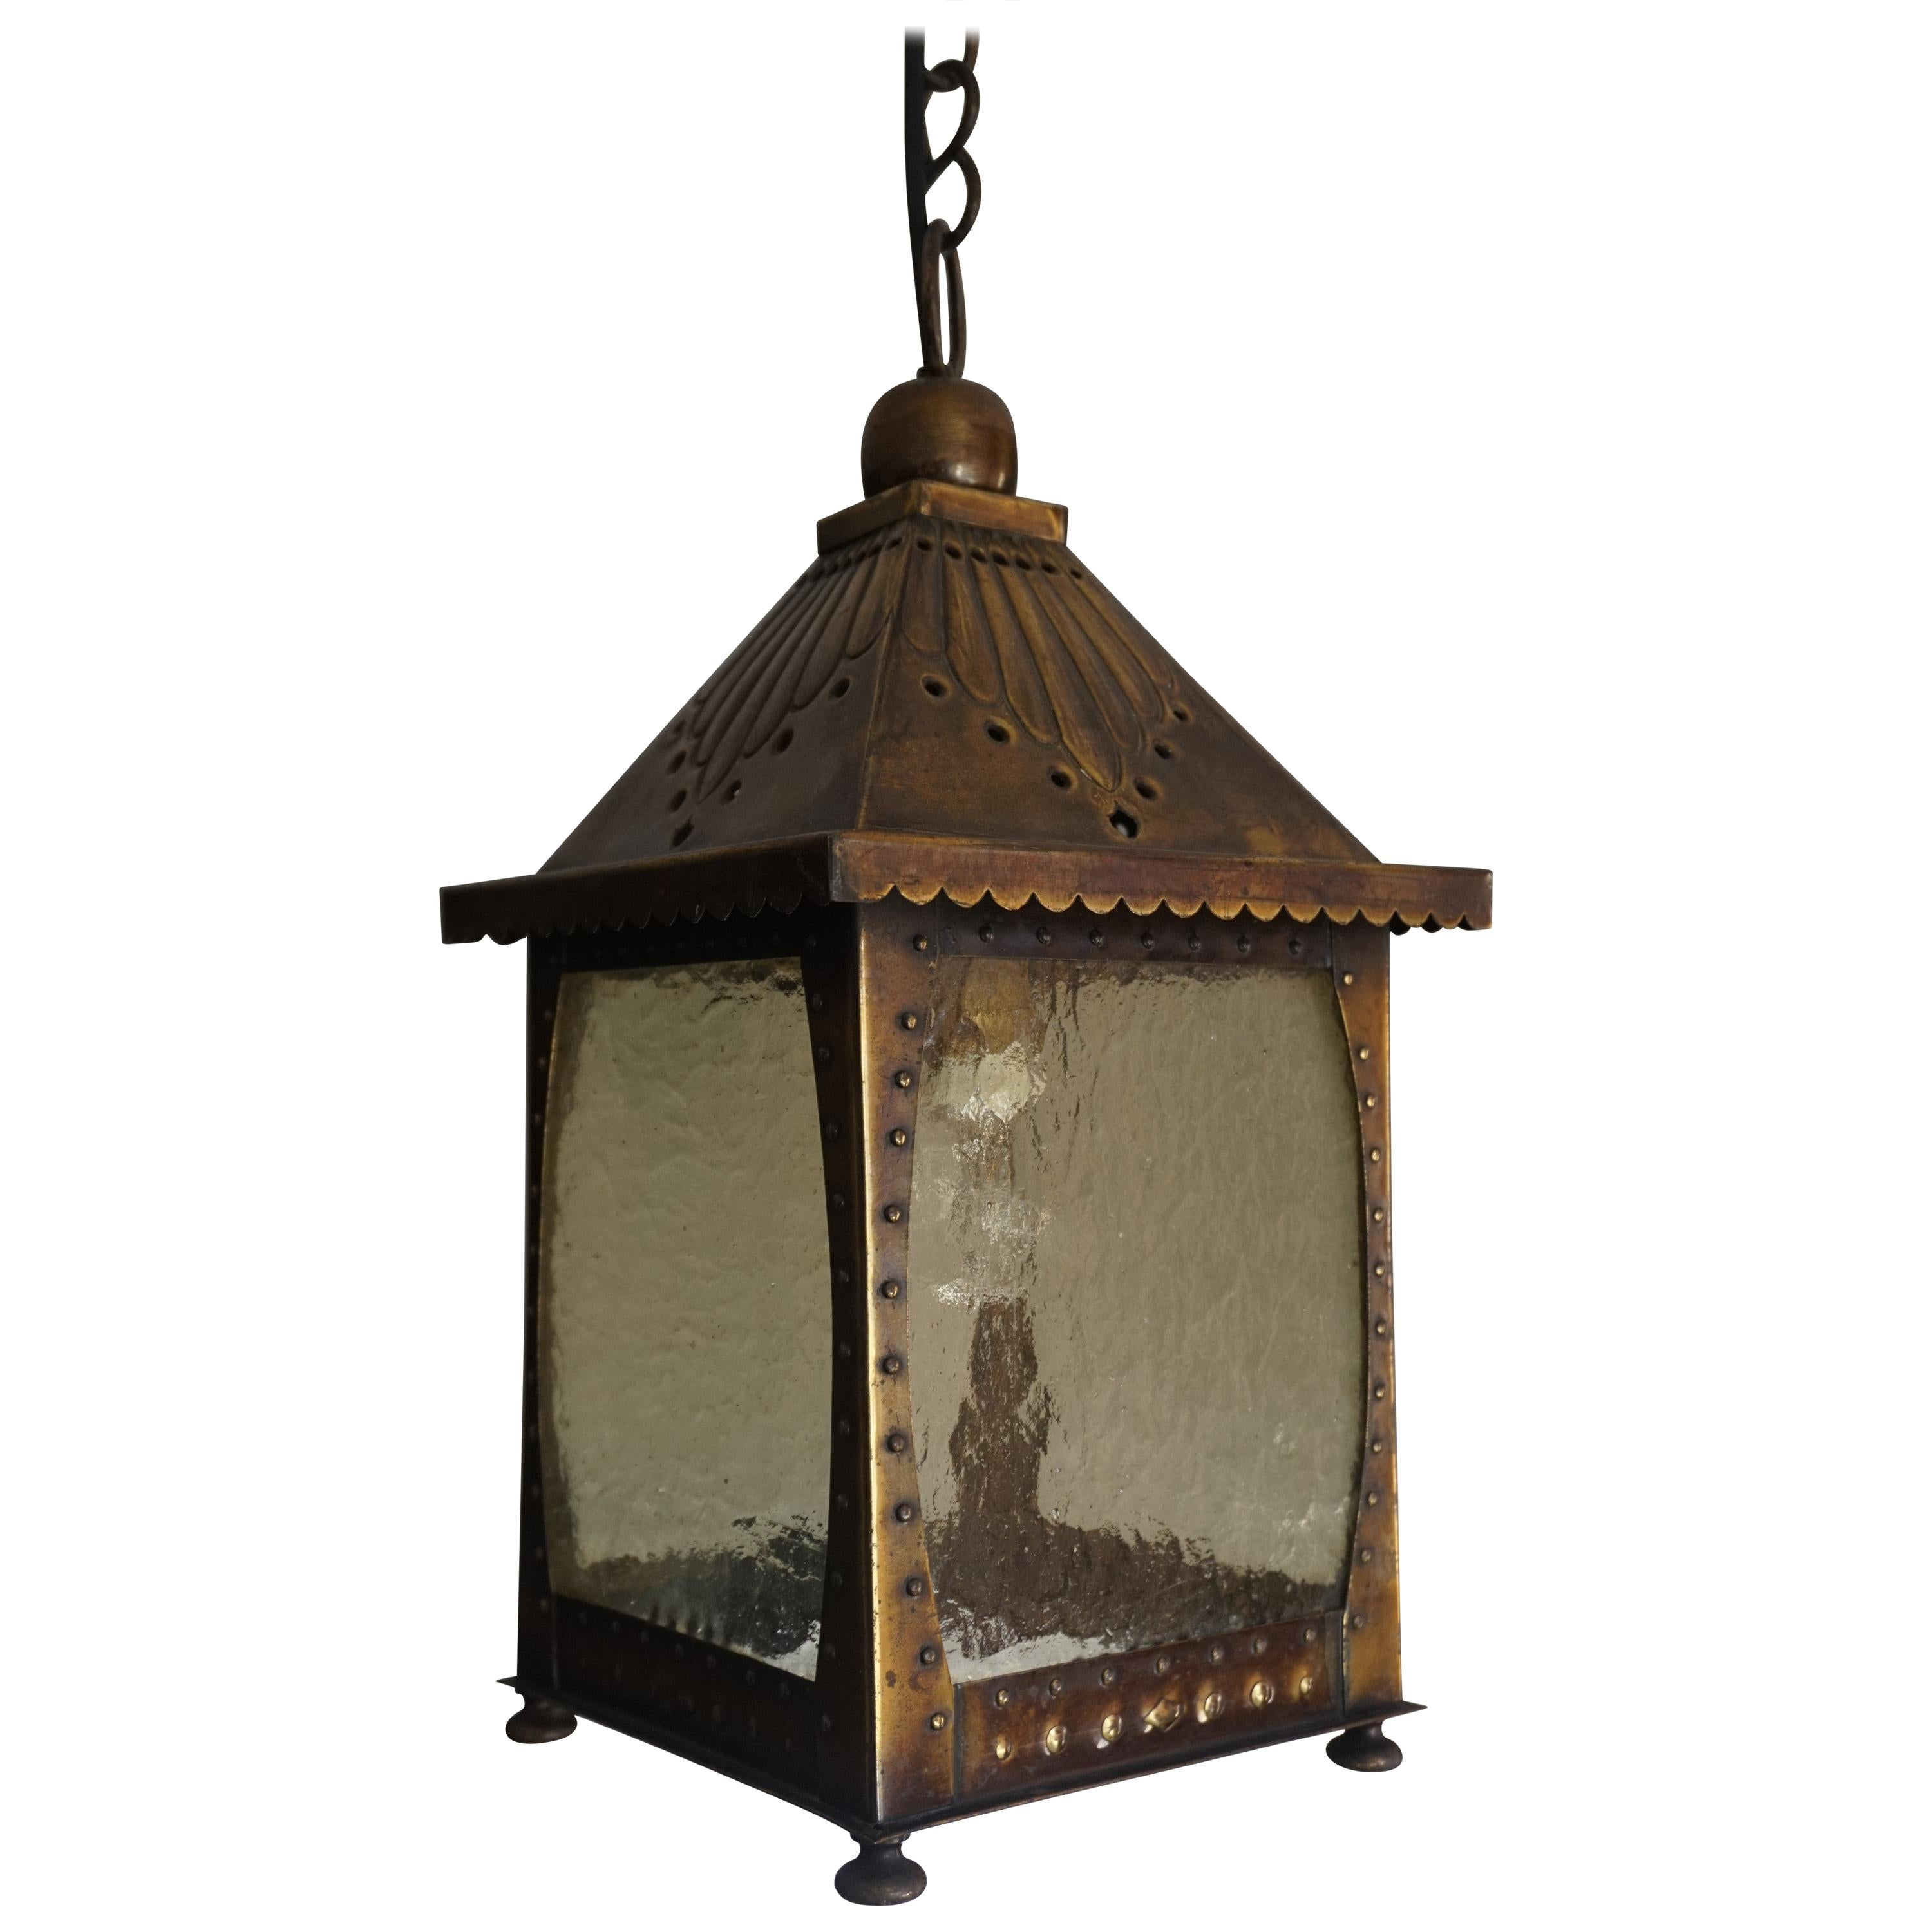 All Original Arts and Crafts Lantern Shape Pendant with Cathedral Glass & Rivets